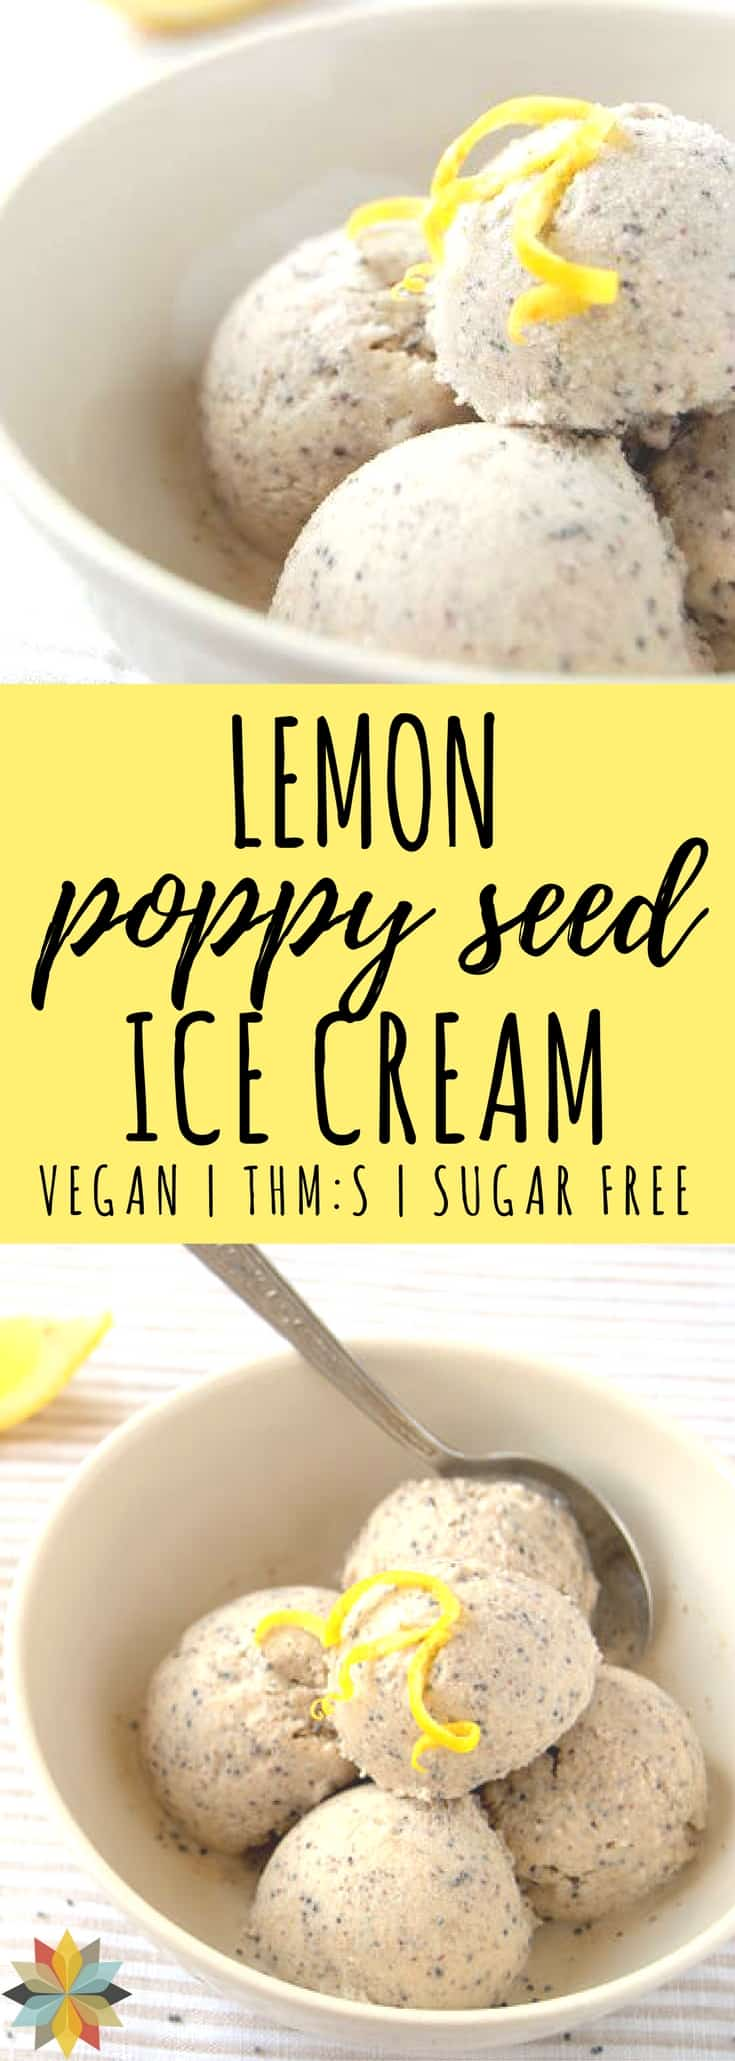 Lemon Poppy Seed Ice Cream - vegan, sugar-free, dairy-free, low carb, and THM:S